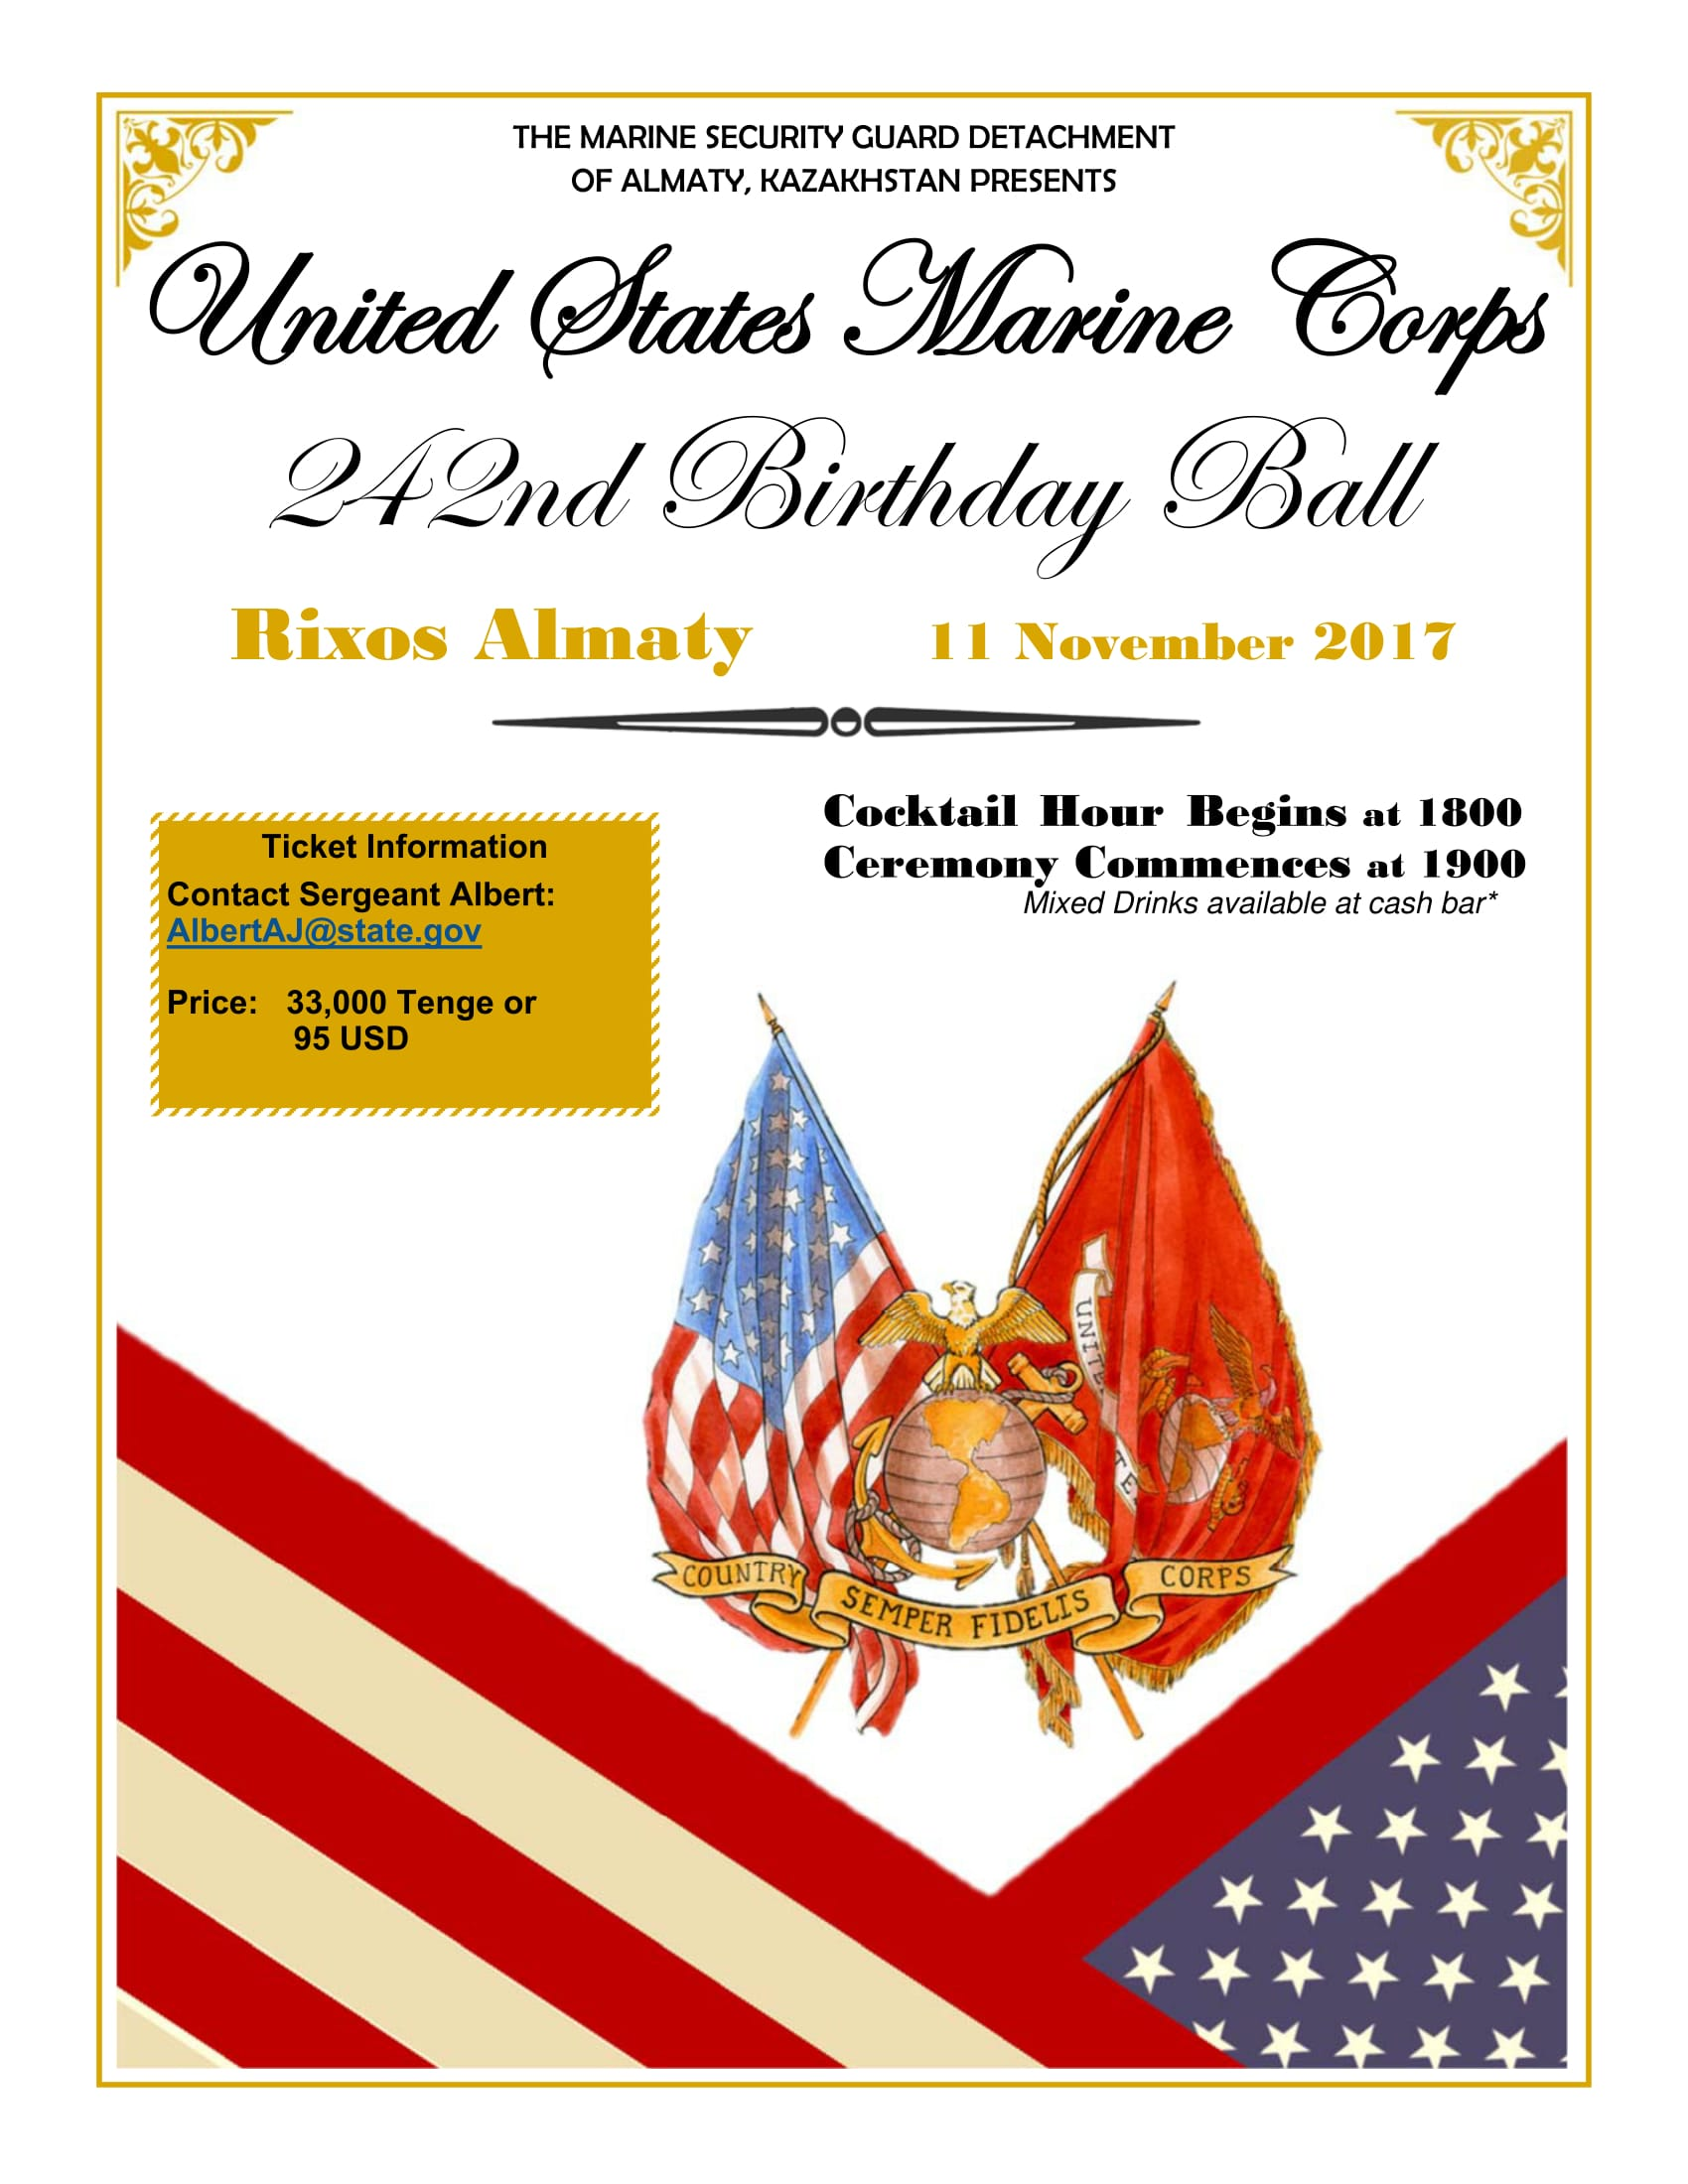 Marine corps ball flyer heartpulsar marine corps ball flyer m4hsunfo